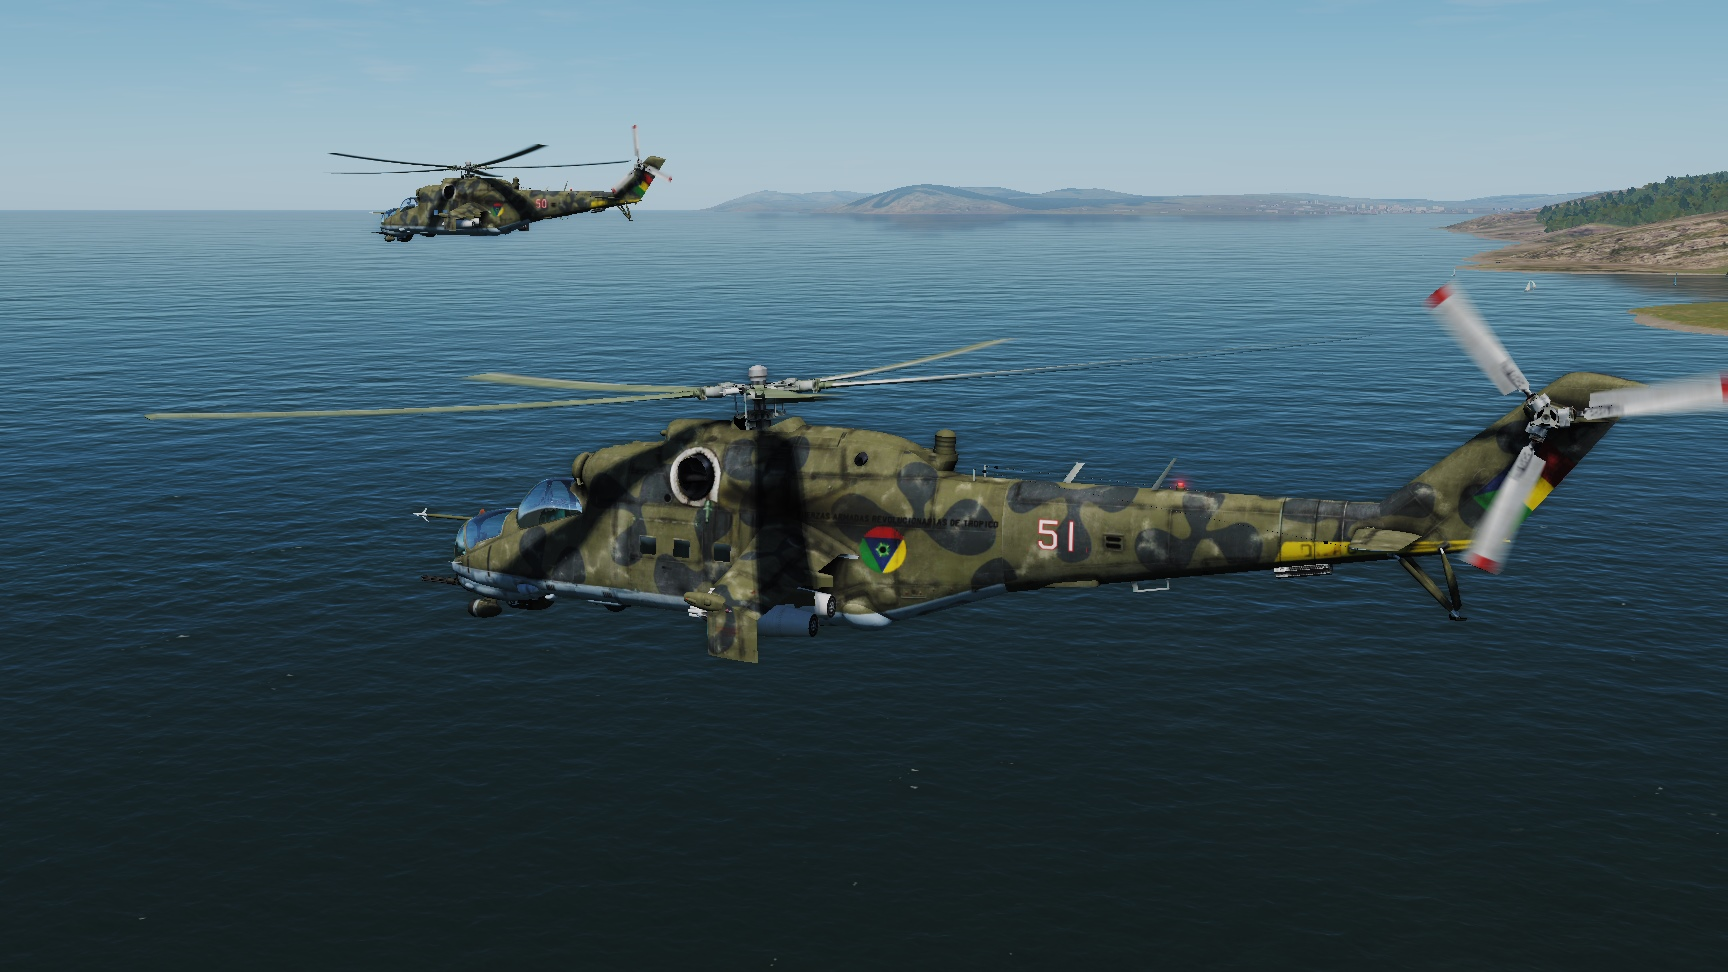 Tropico Mi-24 skin (fictional)